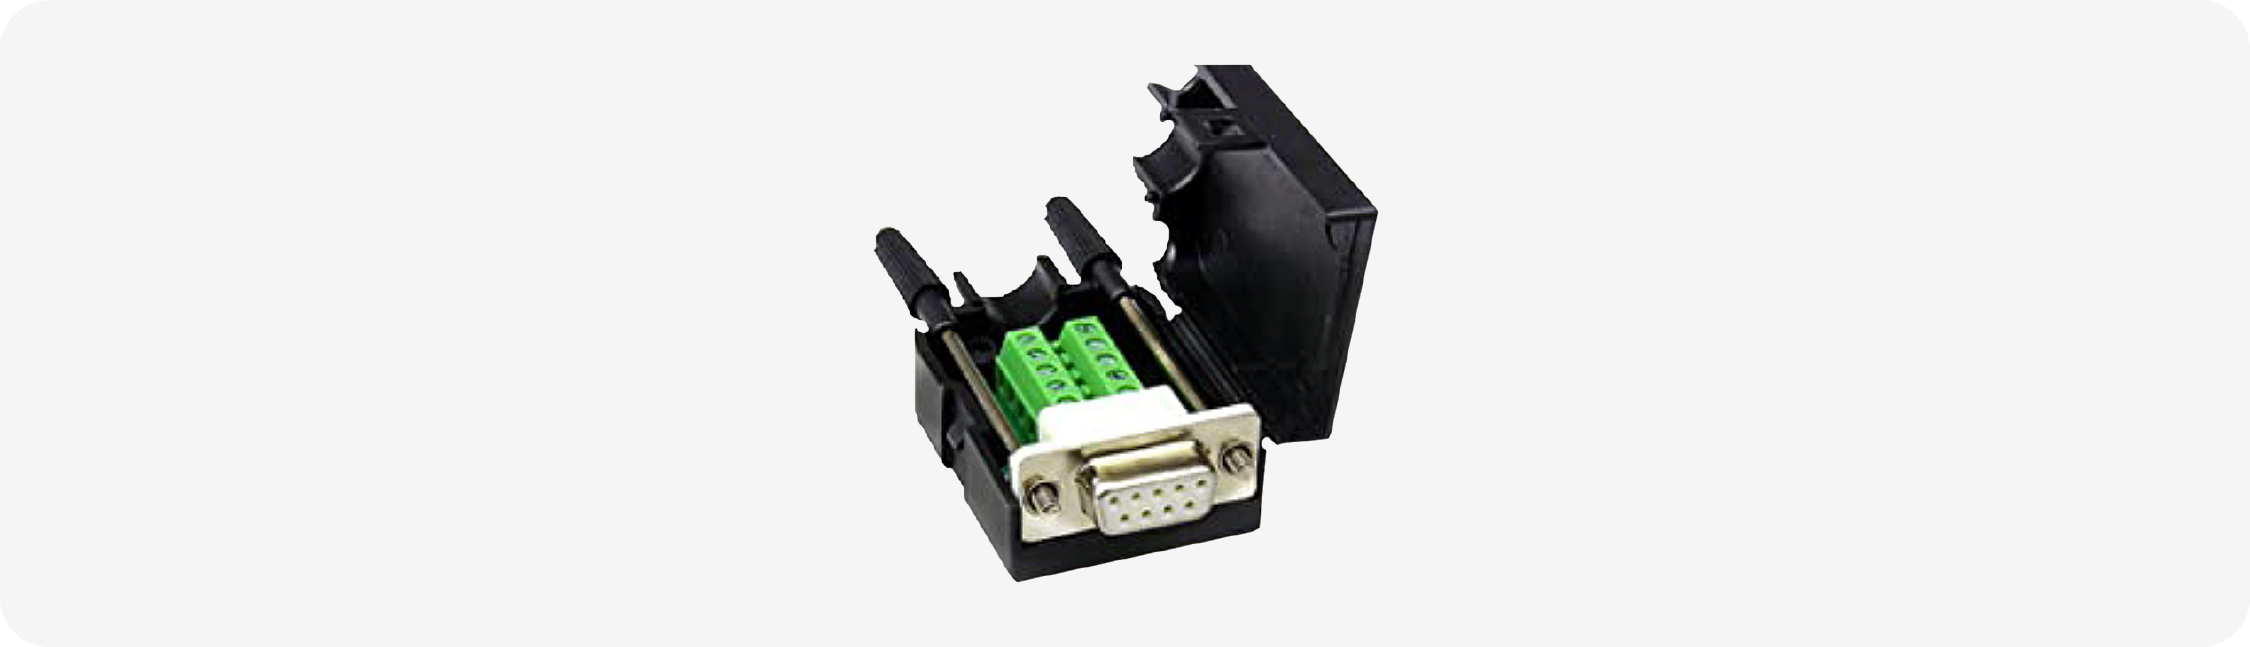 DB9 breakout connector